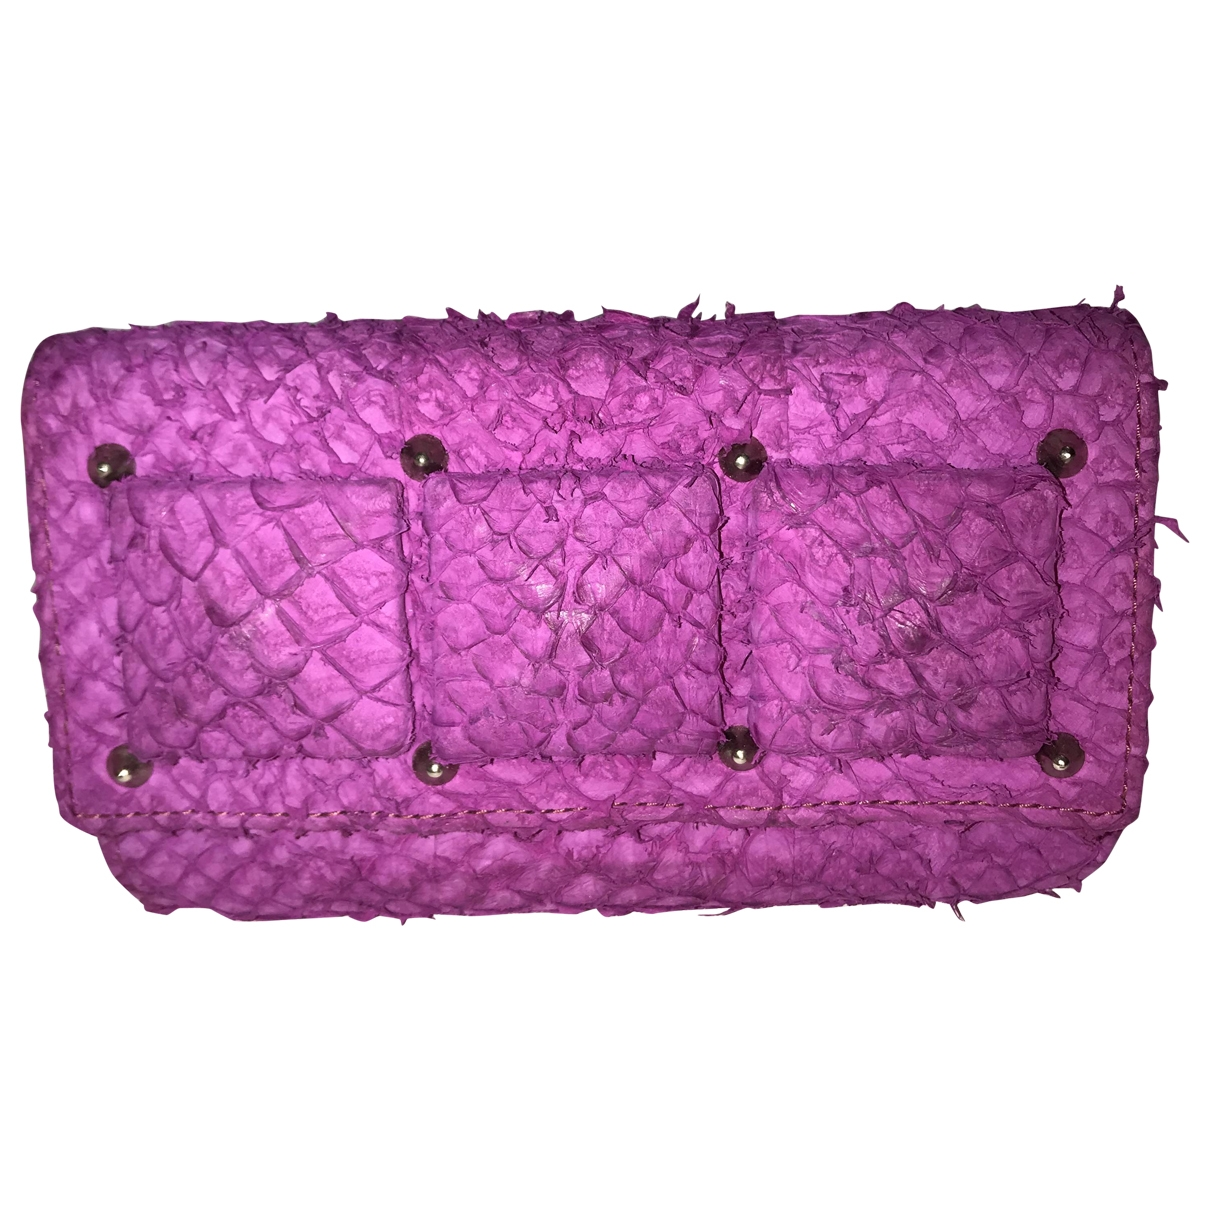 Non Signé / Unsigned \N Pink Water snake Clutch bag for Women \N